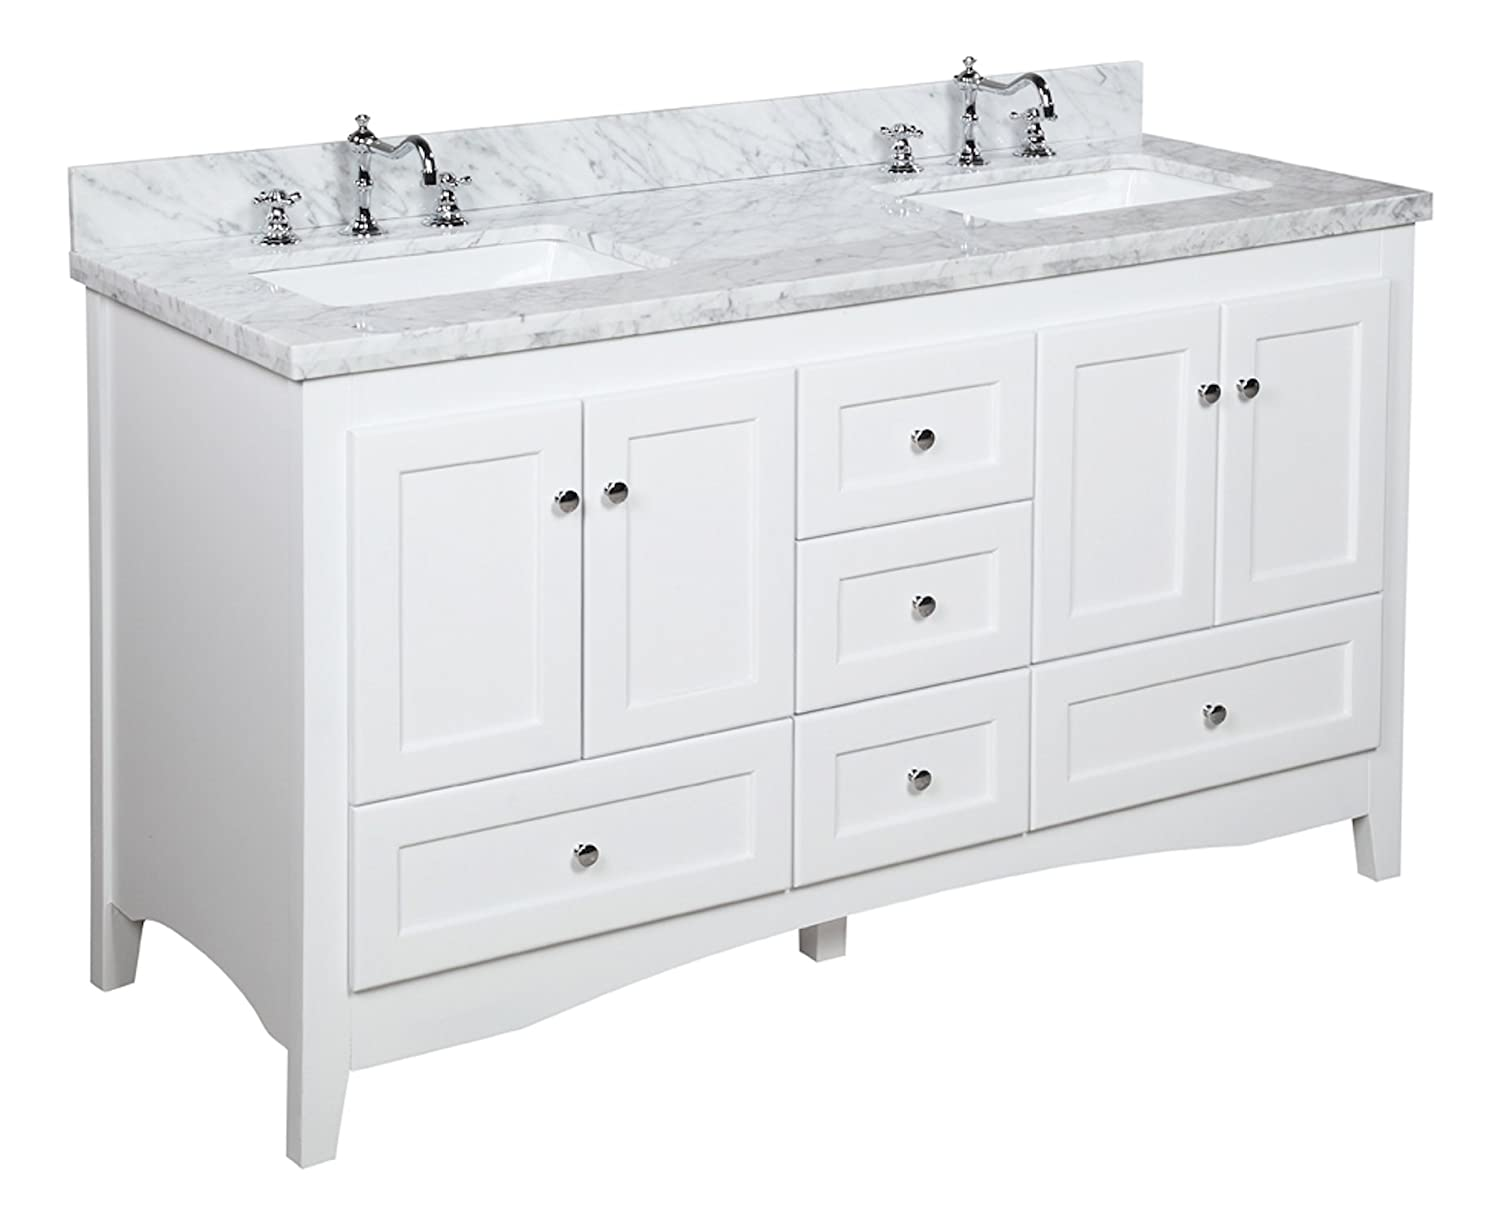 Abbey 60-inch Double Bathroom Vanity Carrara White Includes White Shaker Style Cabinet with Soft Close Drawers, Authentic Italian Carrara Marble Top, and Rectangular Ceramic Sinks